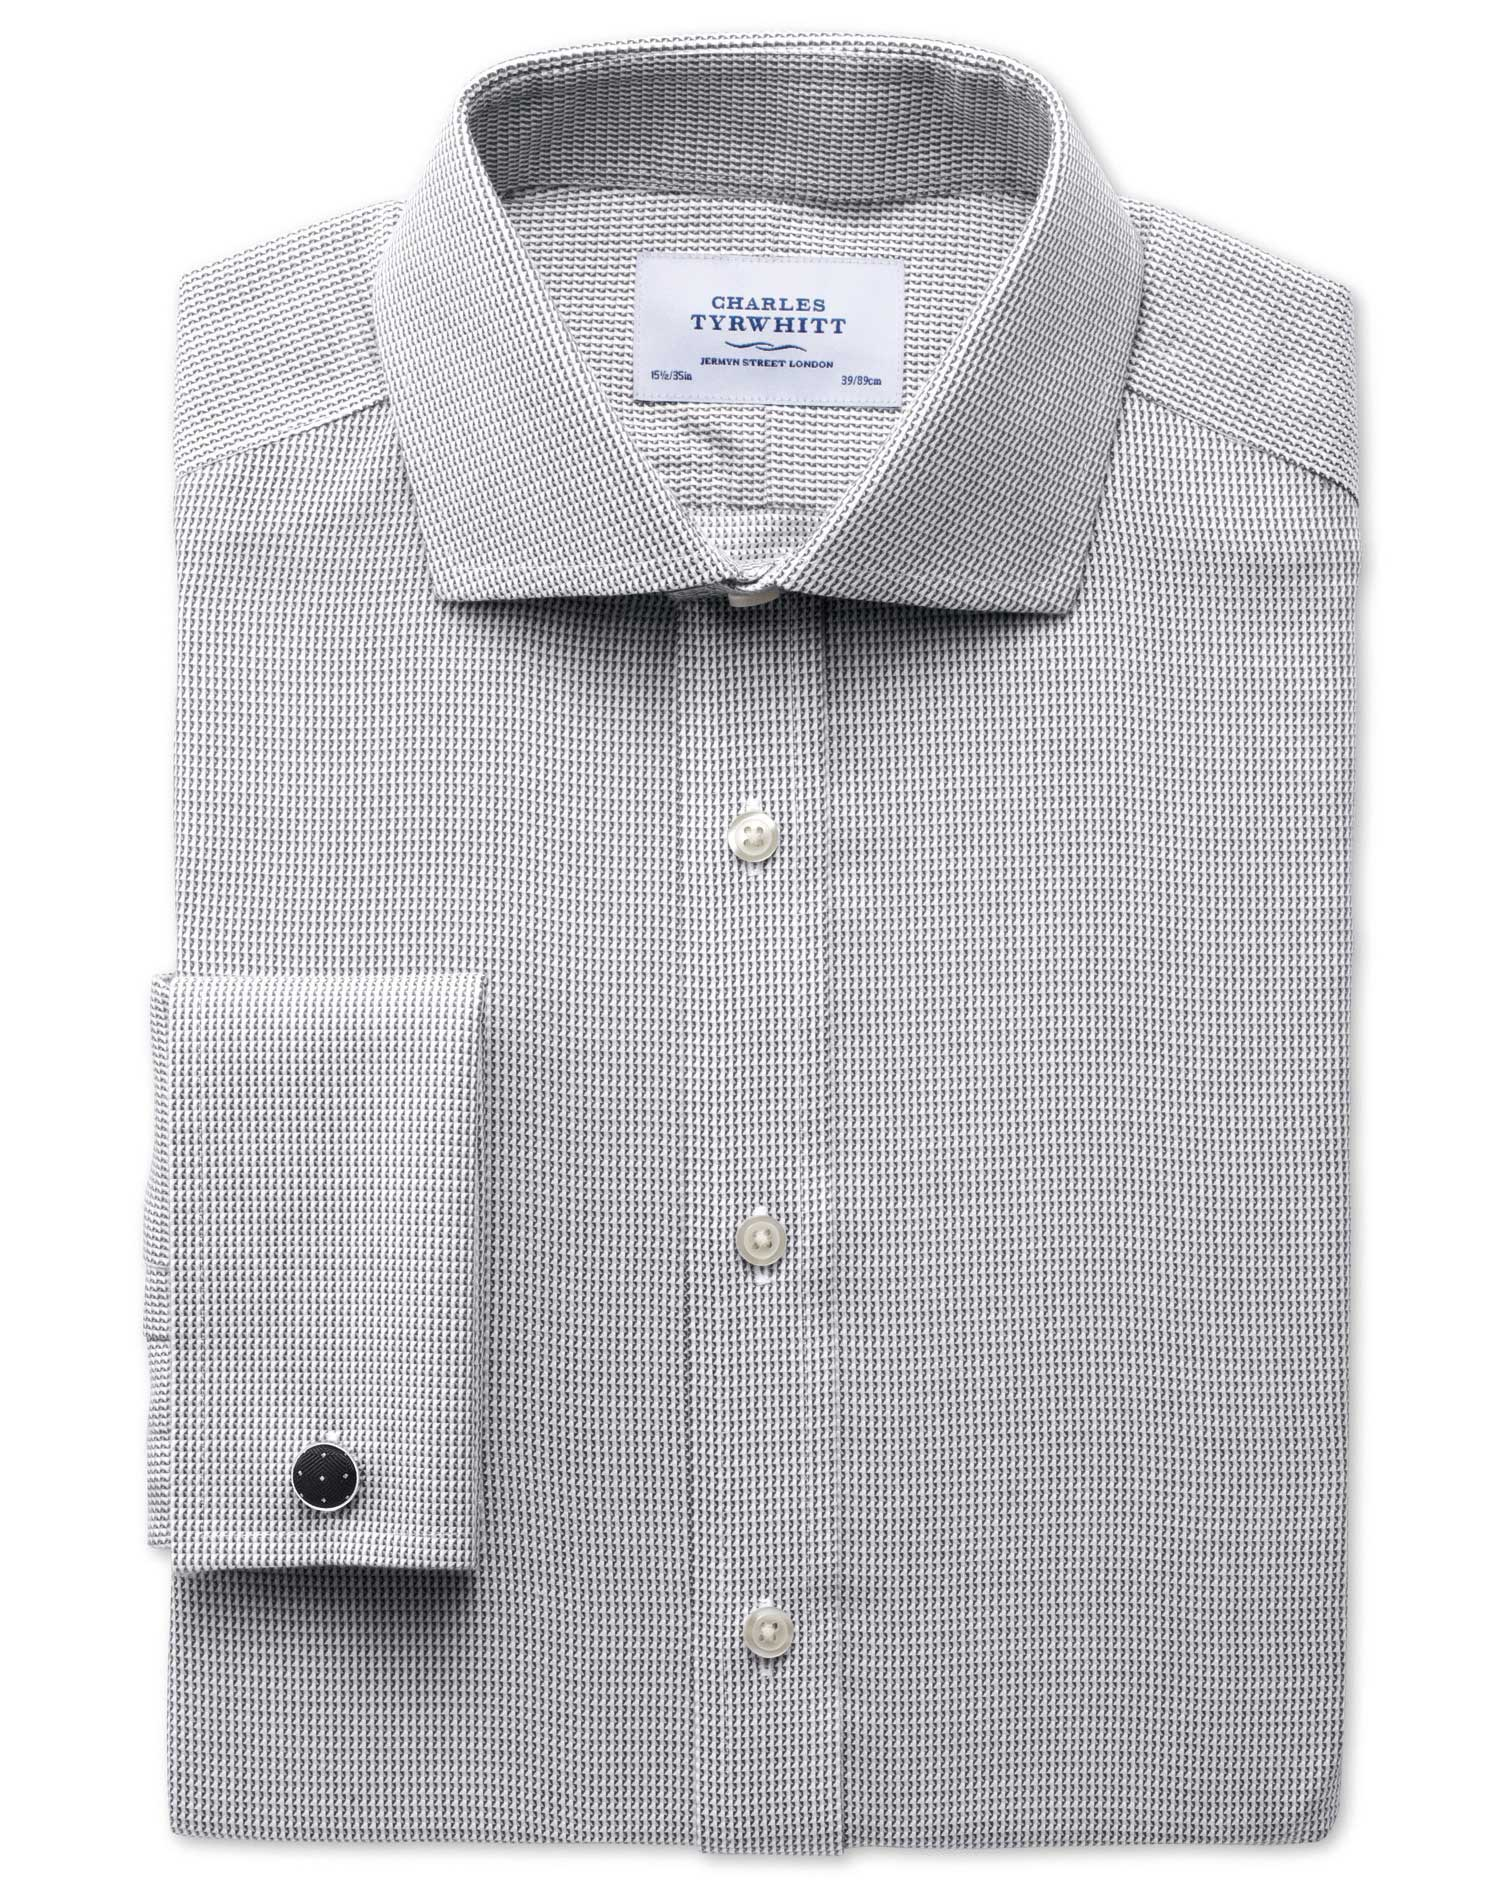 Extra Slim Fit Cutaway Collar Non-Iron Grey Cotton Formal Shirt Single Cuff Size 15.5/35 by Charles